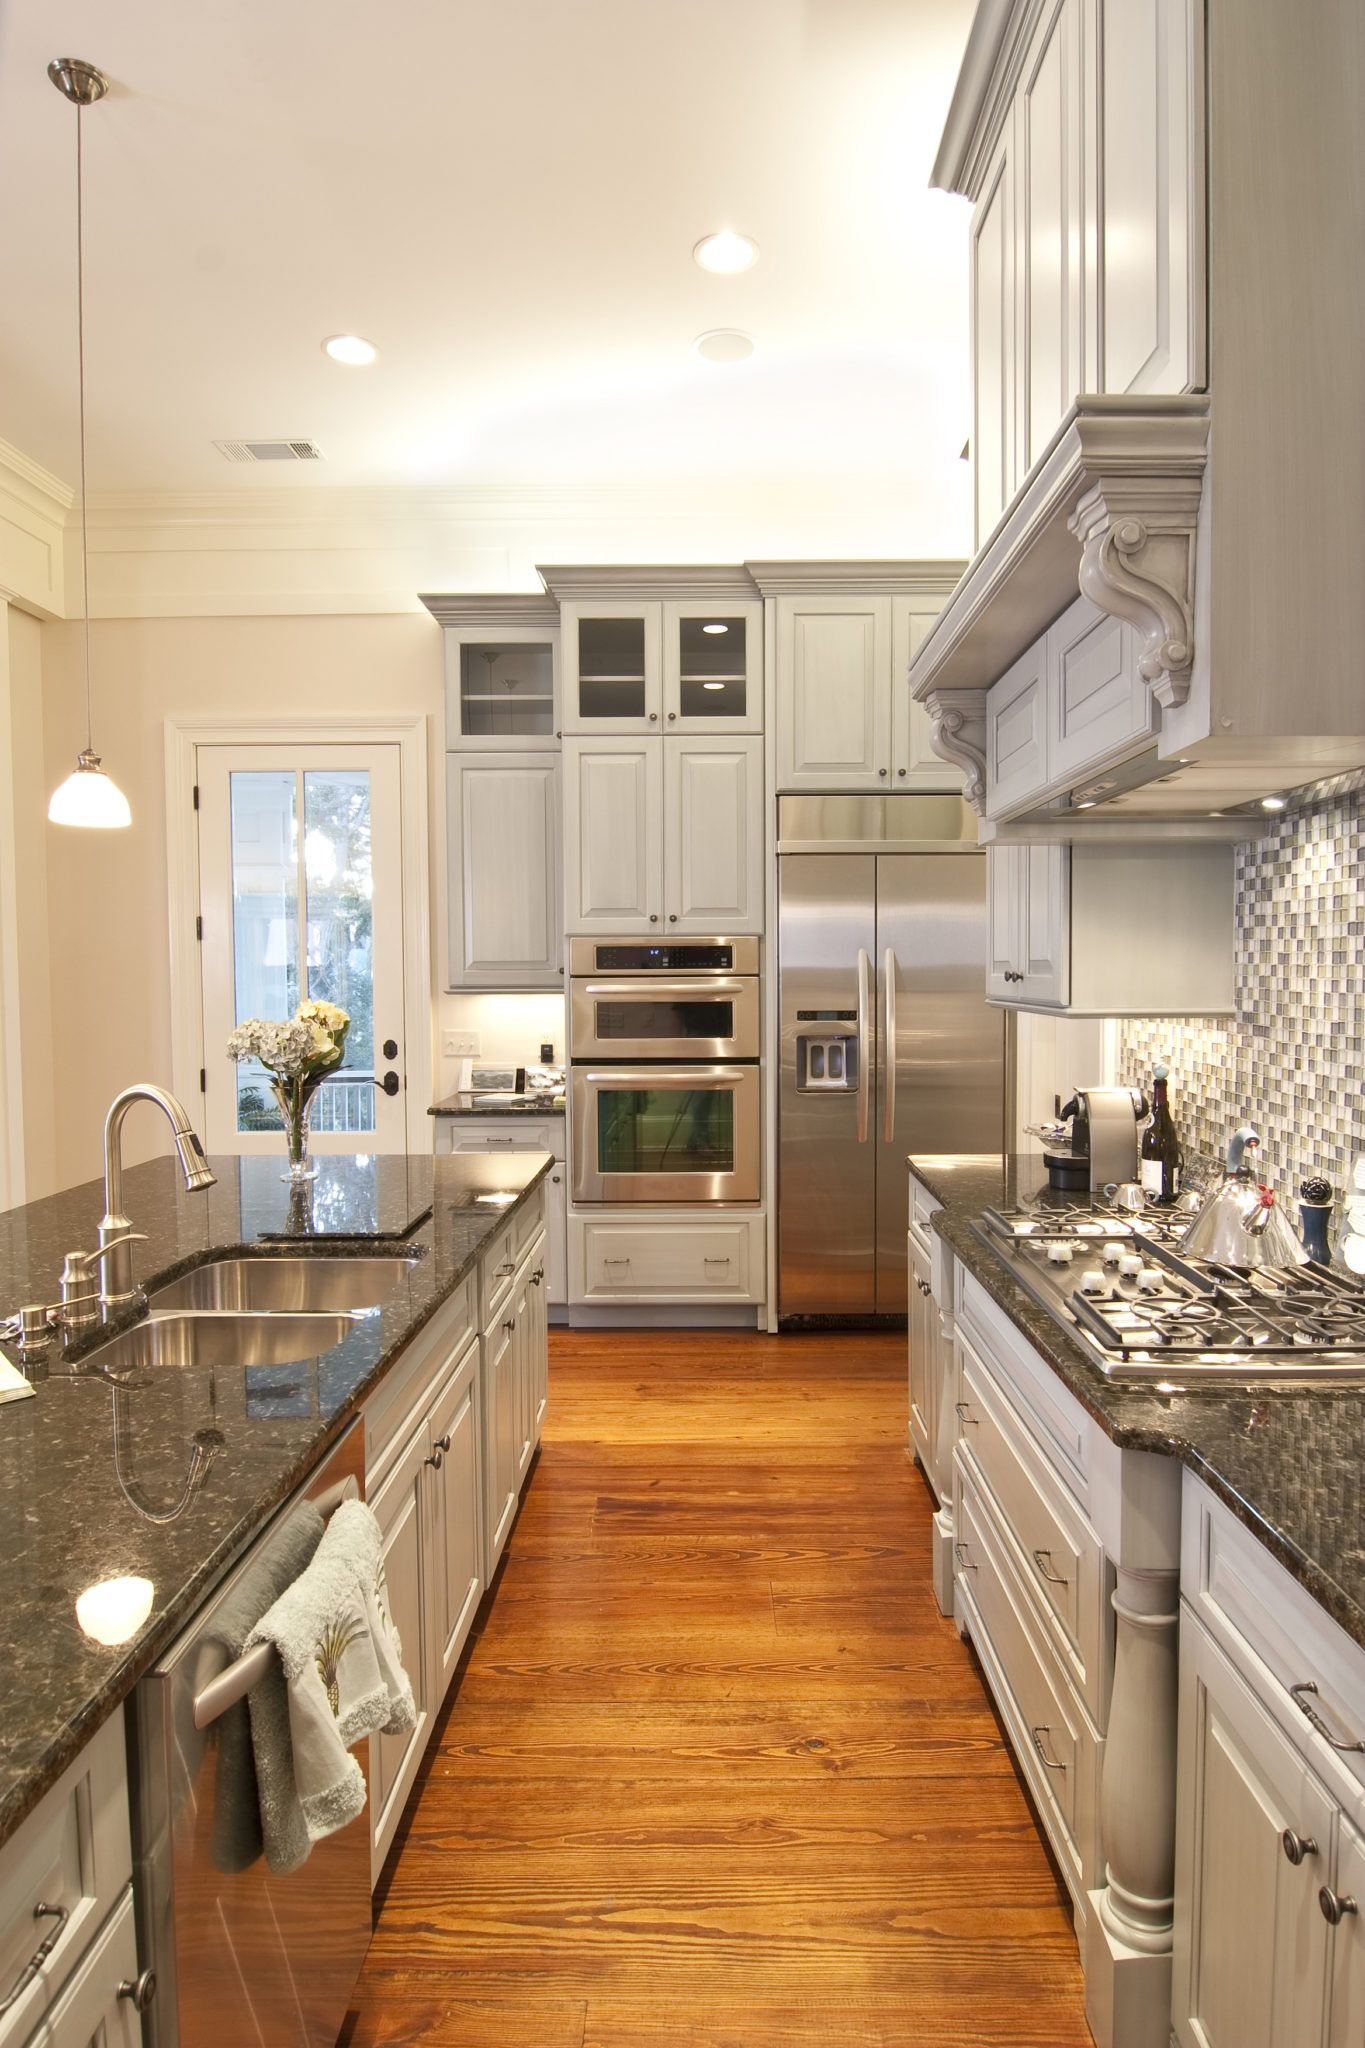 The kitchen is one of the most used rooms in the home. It ...